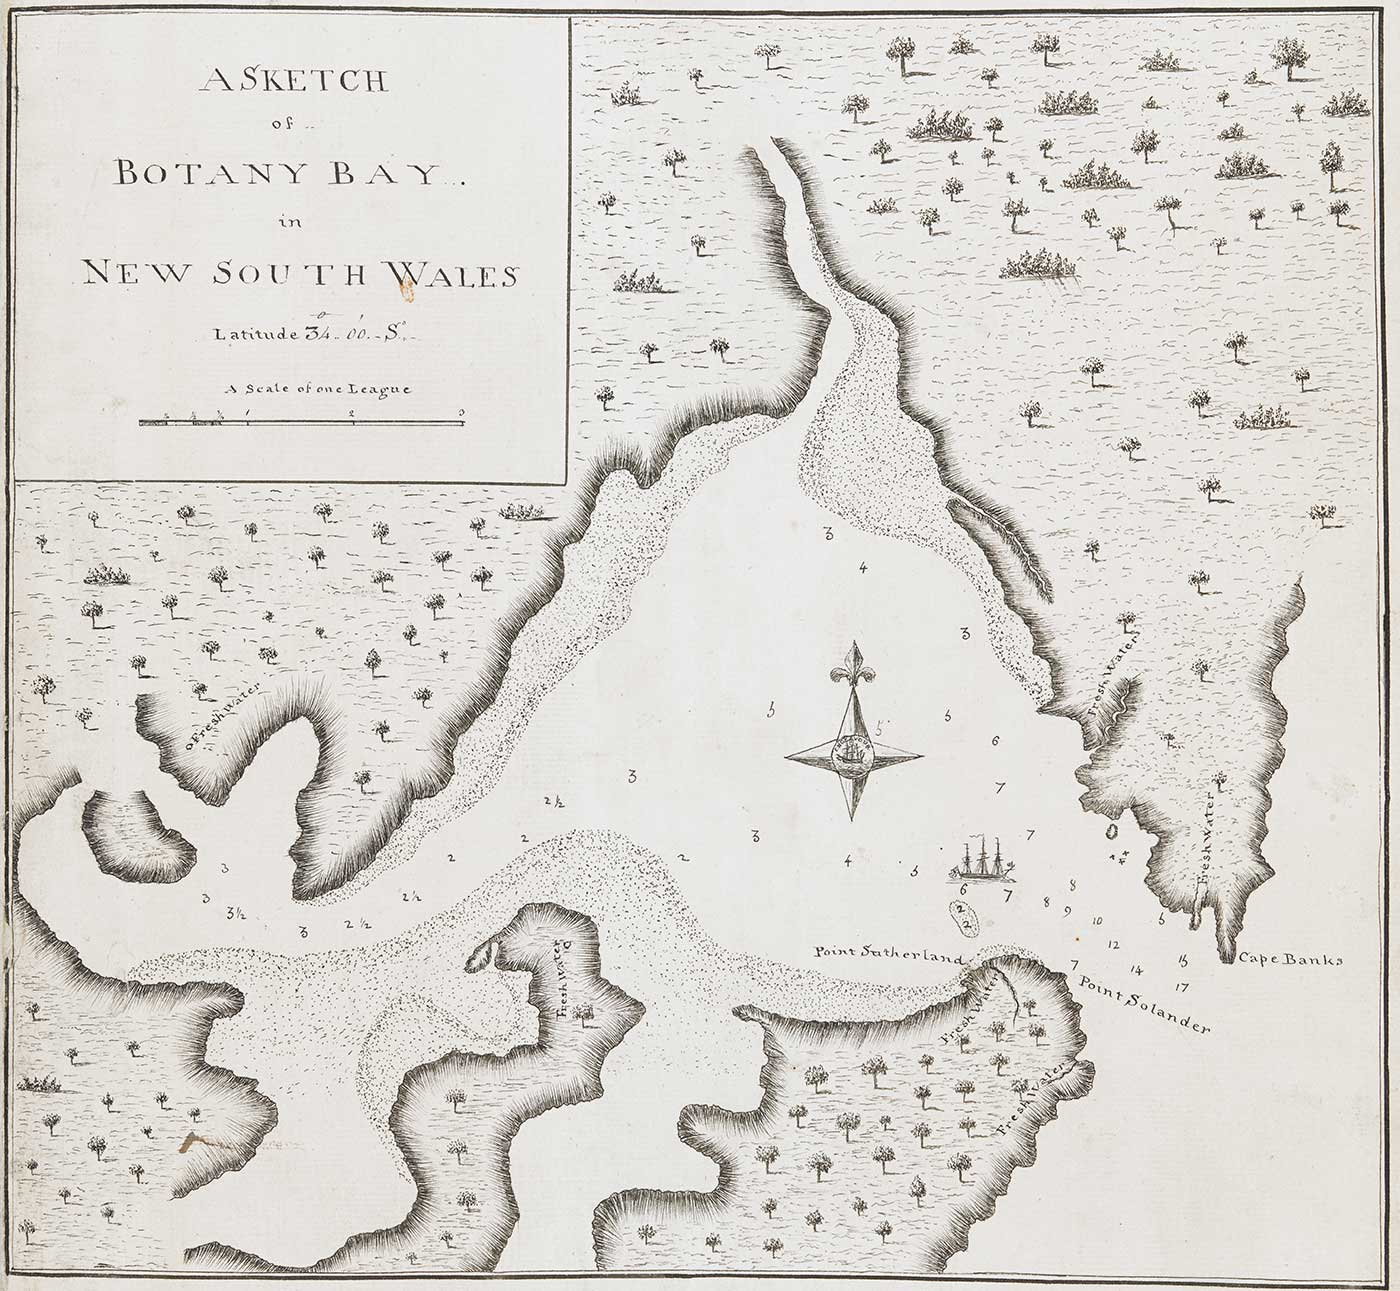 A map of Botany Bay in New South Wales which features illustrations of landmass with trees and coastal edges surrounding a bay. There is a sketch of a ship in the bay and numbers surrounding it. At the mouth of the bay is the text 'POINT SUTHERLAND, POINT SOLANDER AND CAPE BANKS'. - click to view larger image